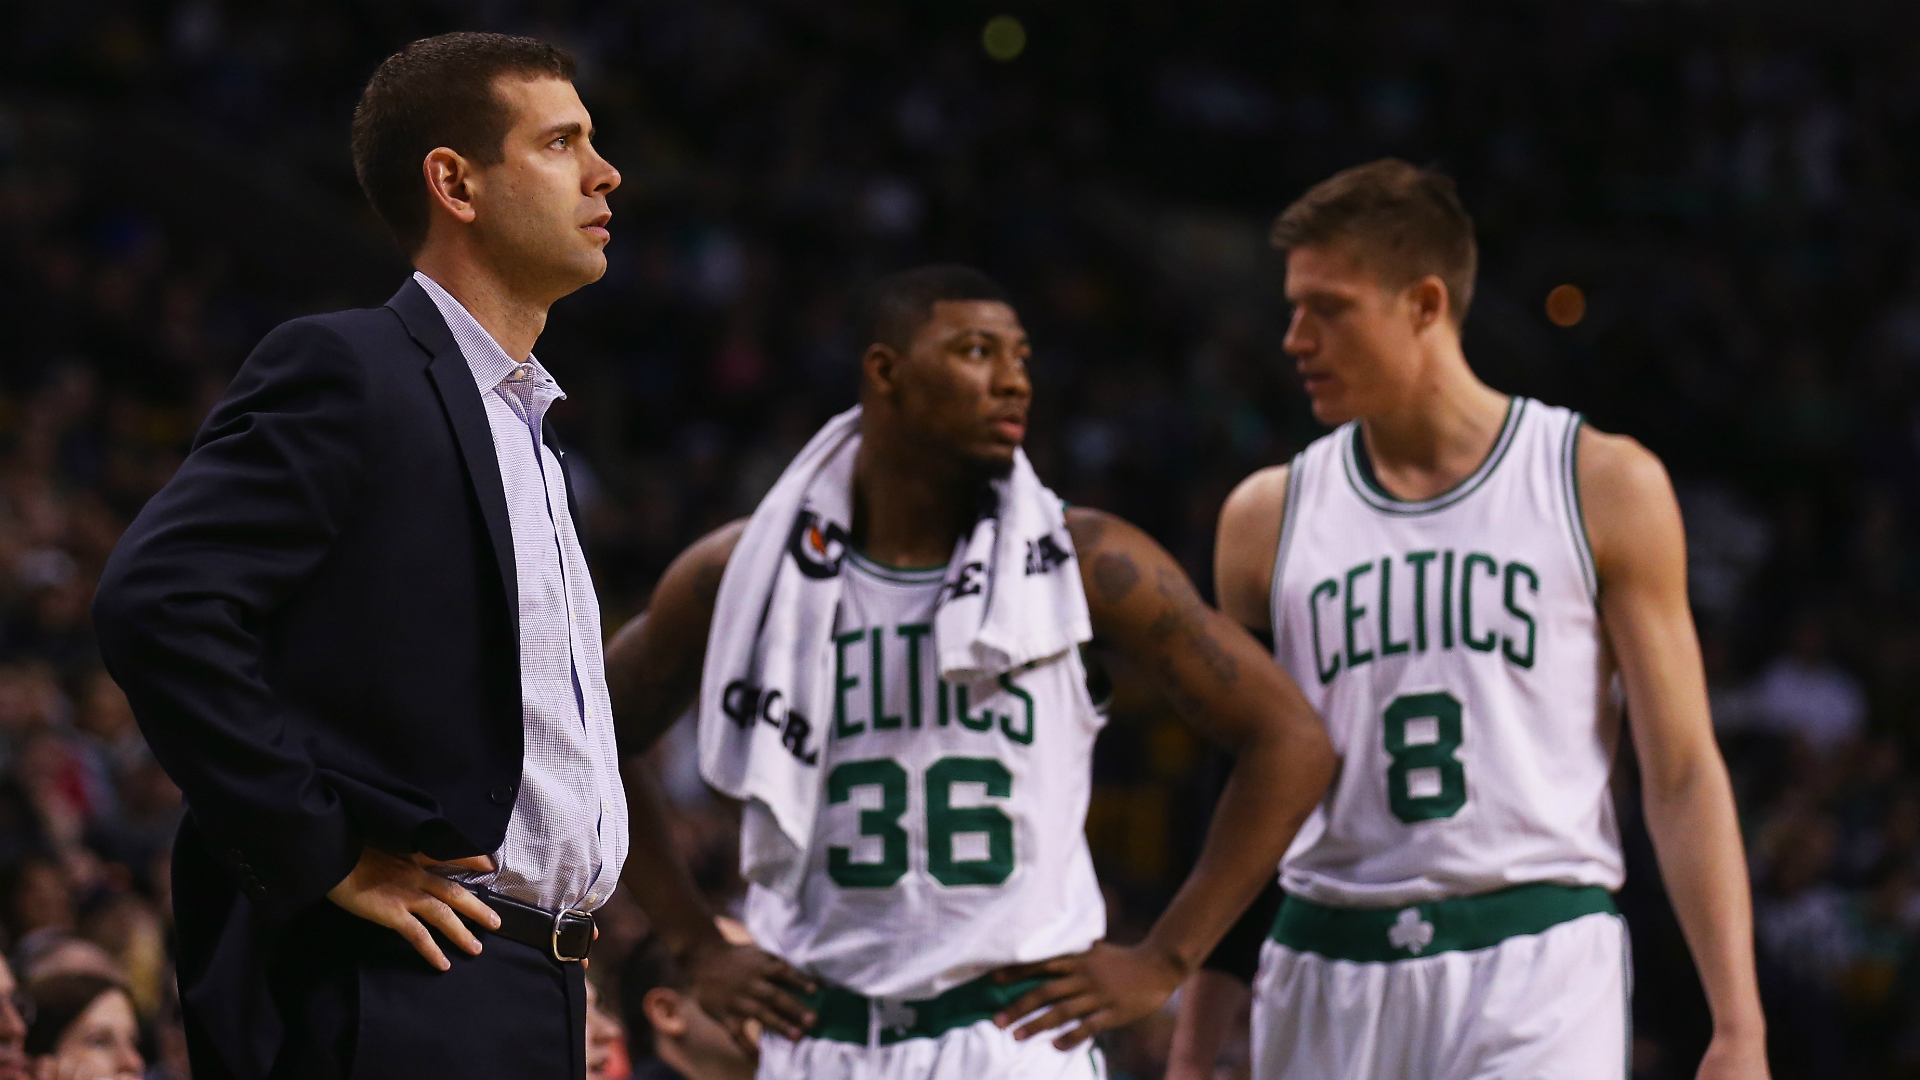 Celtics' Brad Stevens: From 'clueless' to NBA coaching elite